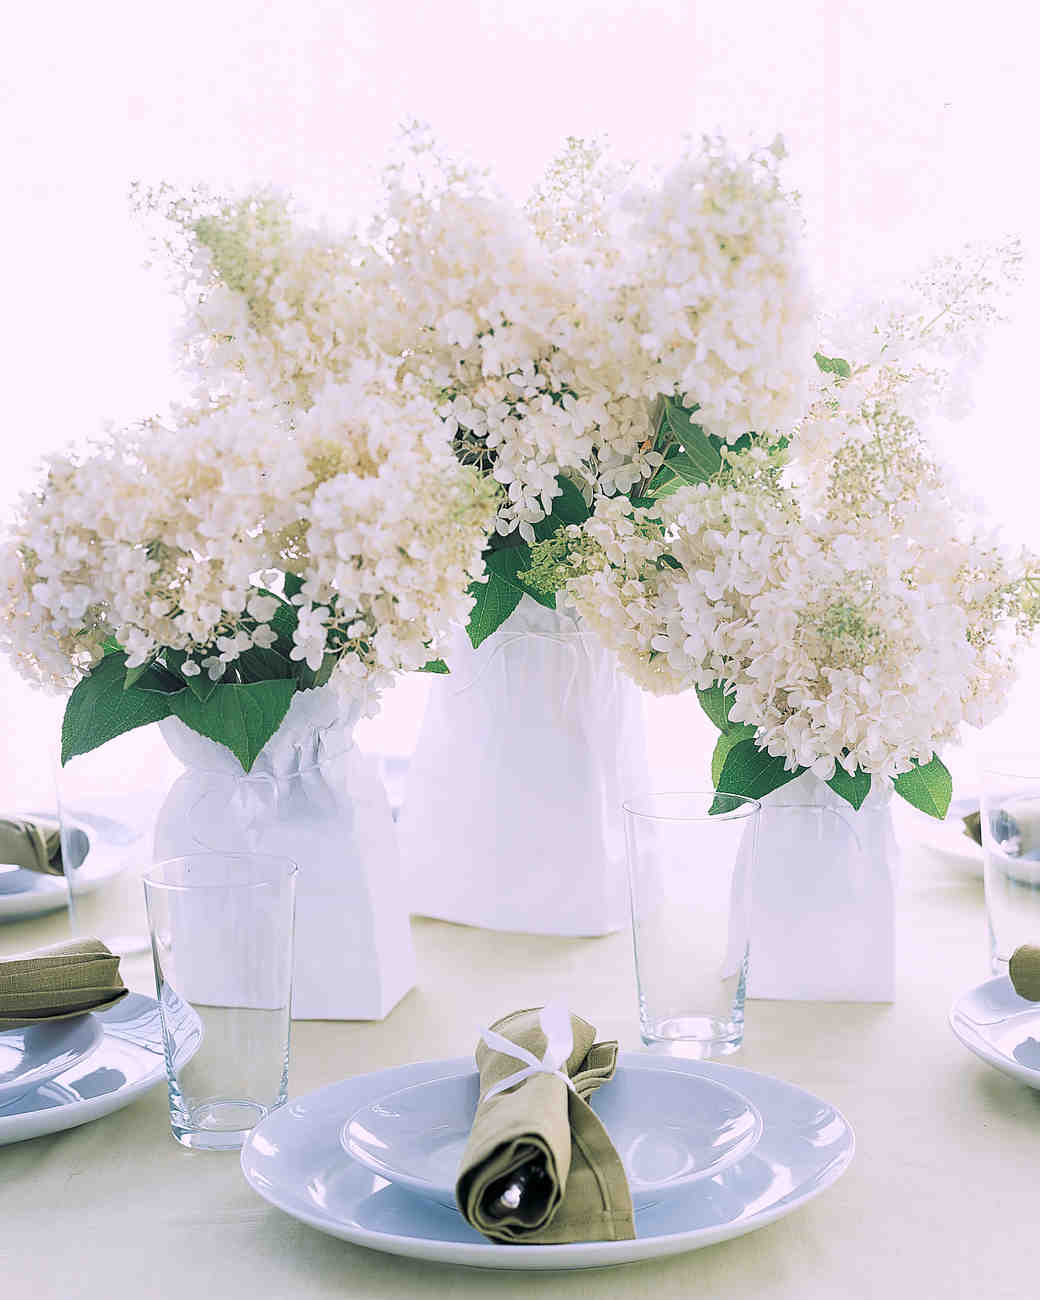 affordable wedding centerpieces that still look elevated martha rh marthastewartweddings com tall wedding centerpiece ideas on a budget red wedding centerpiece ideas on a budget